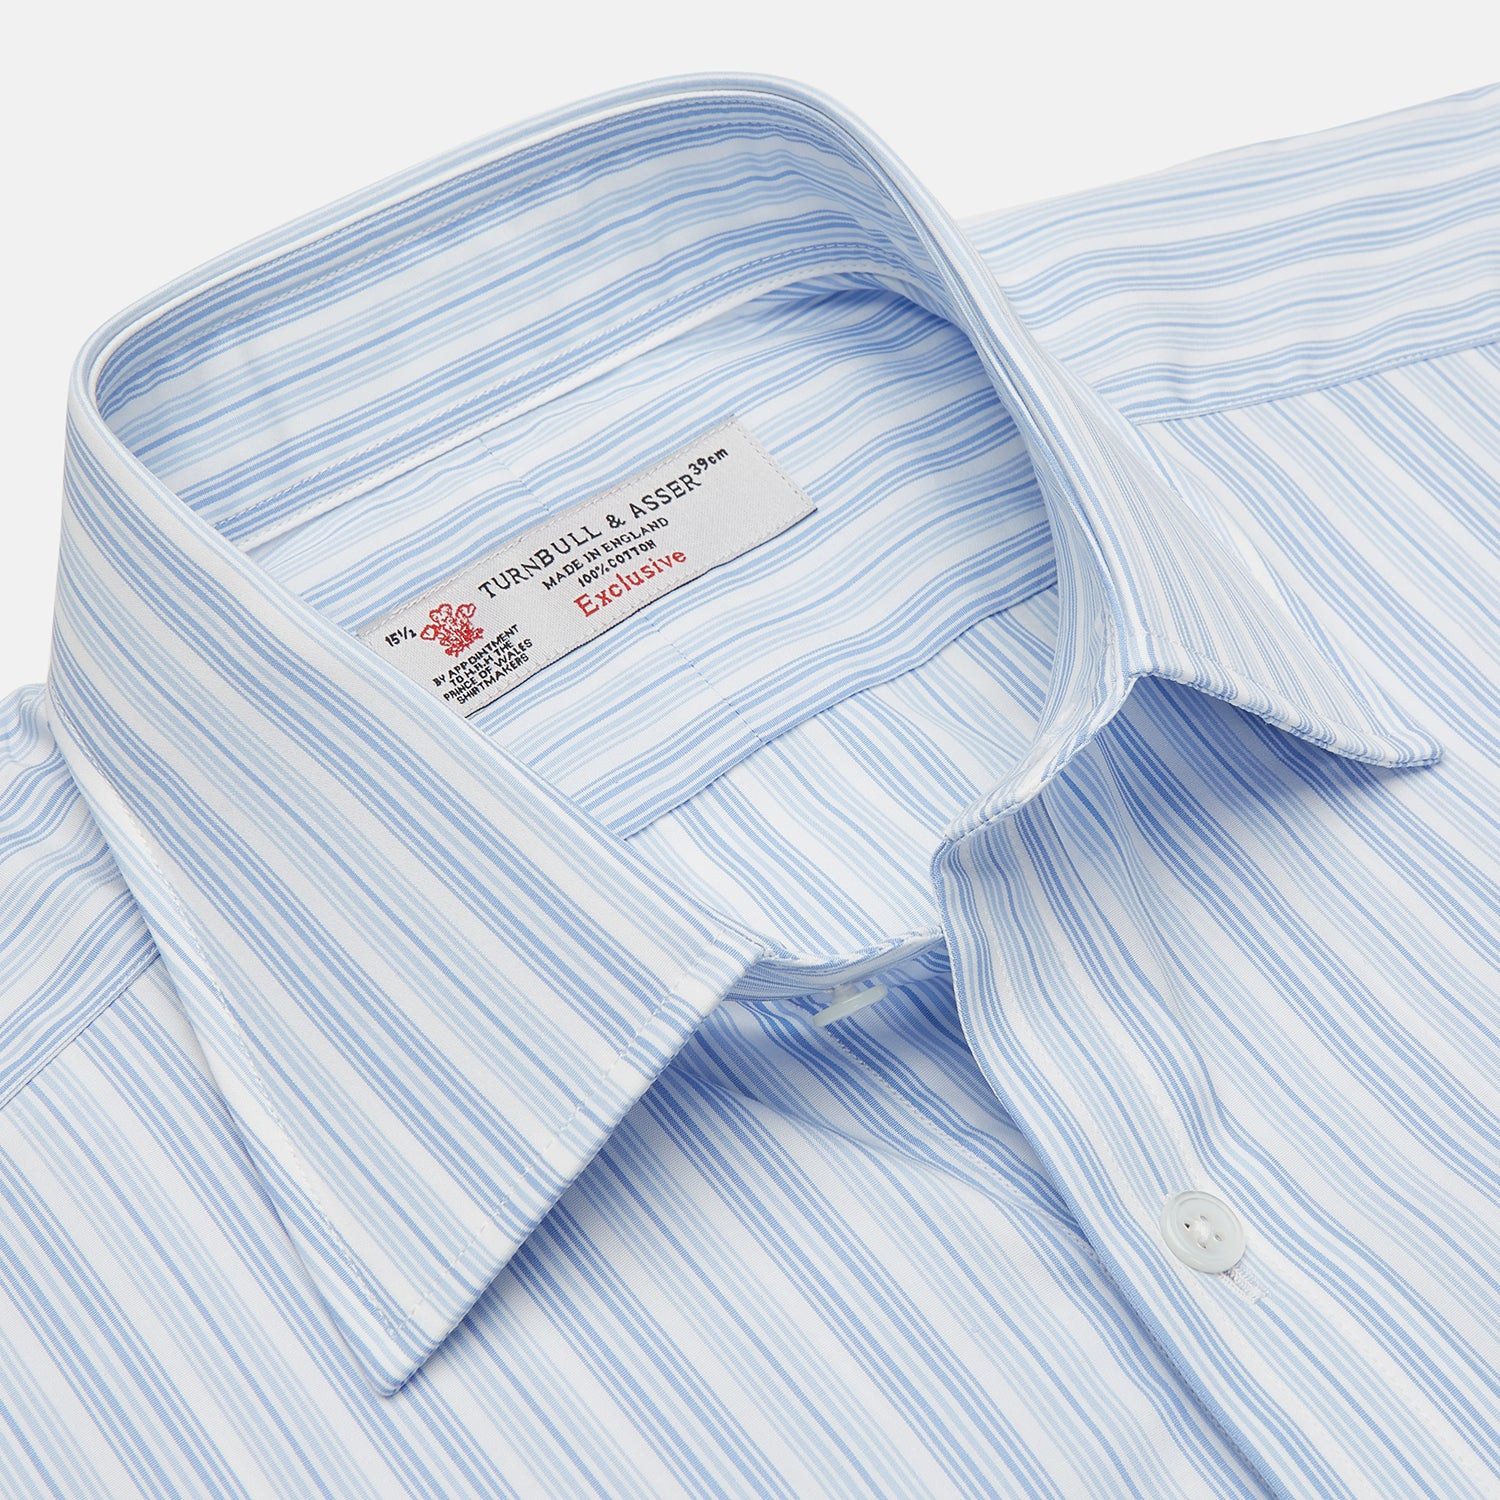 Blue & White Stripe Poplin Cotton Regular Fit Shirt with T&A Collar & Double Cuffs